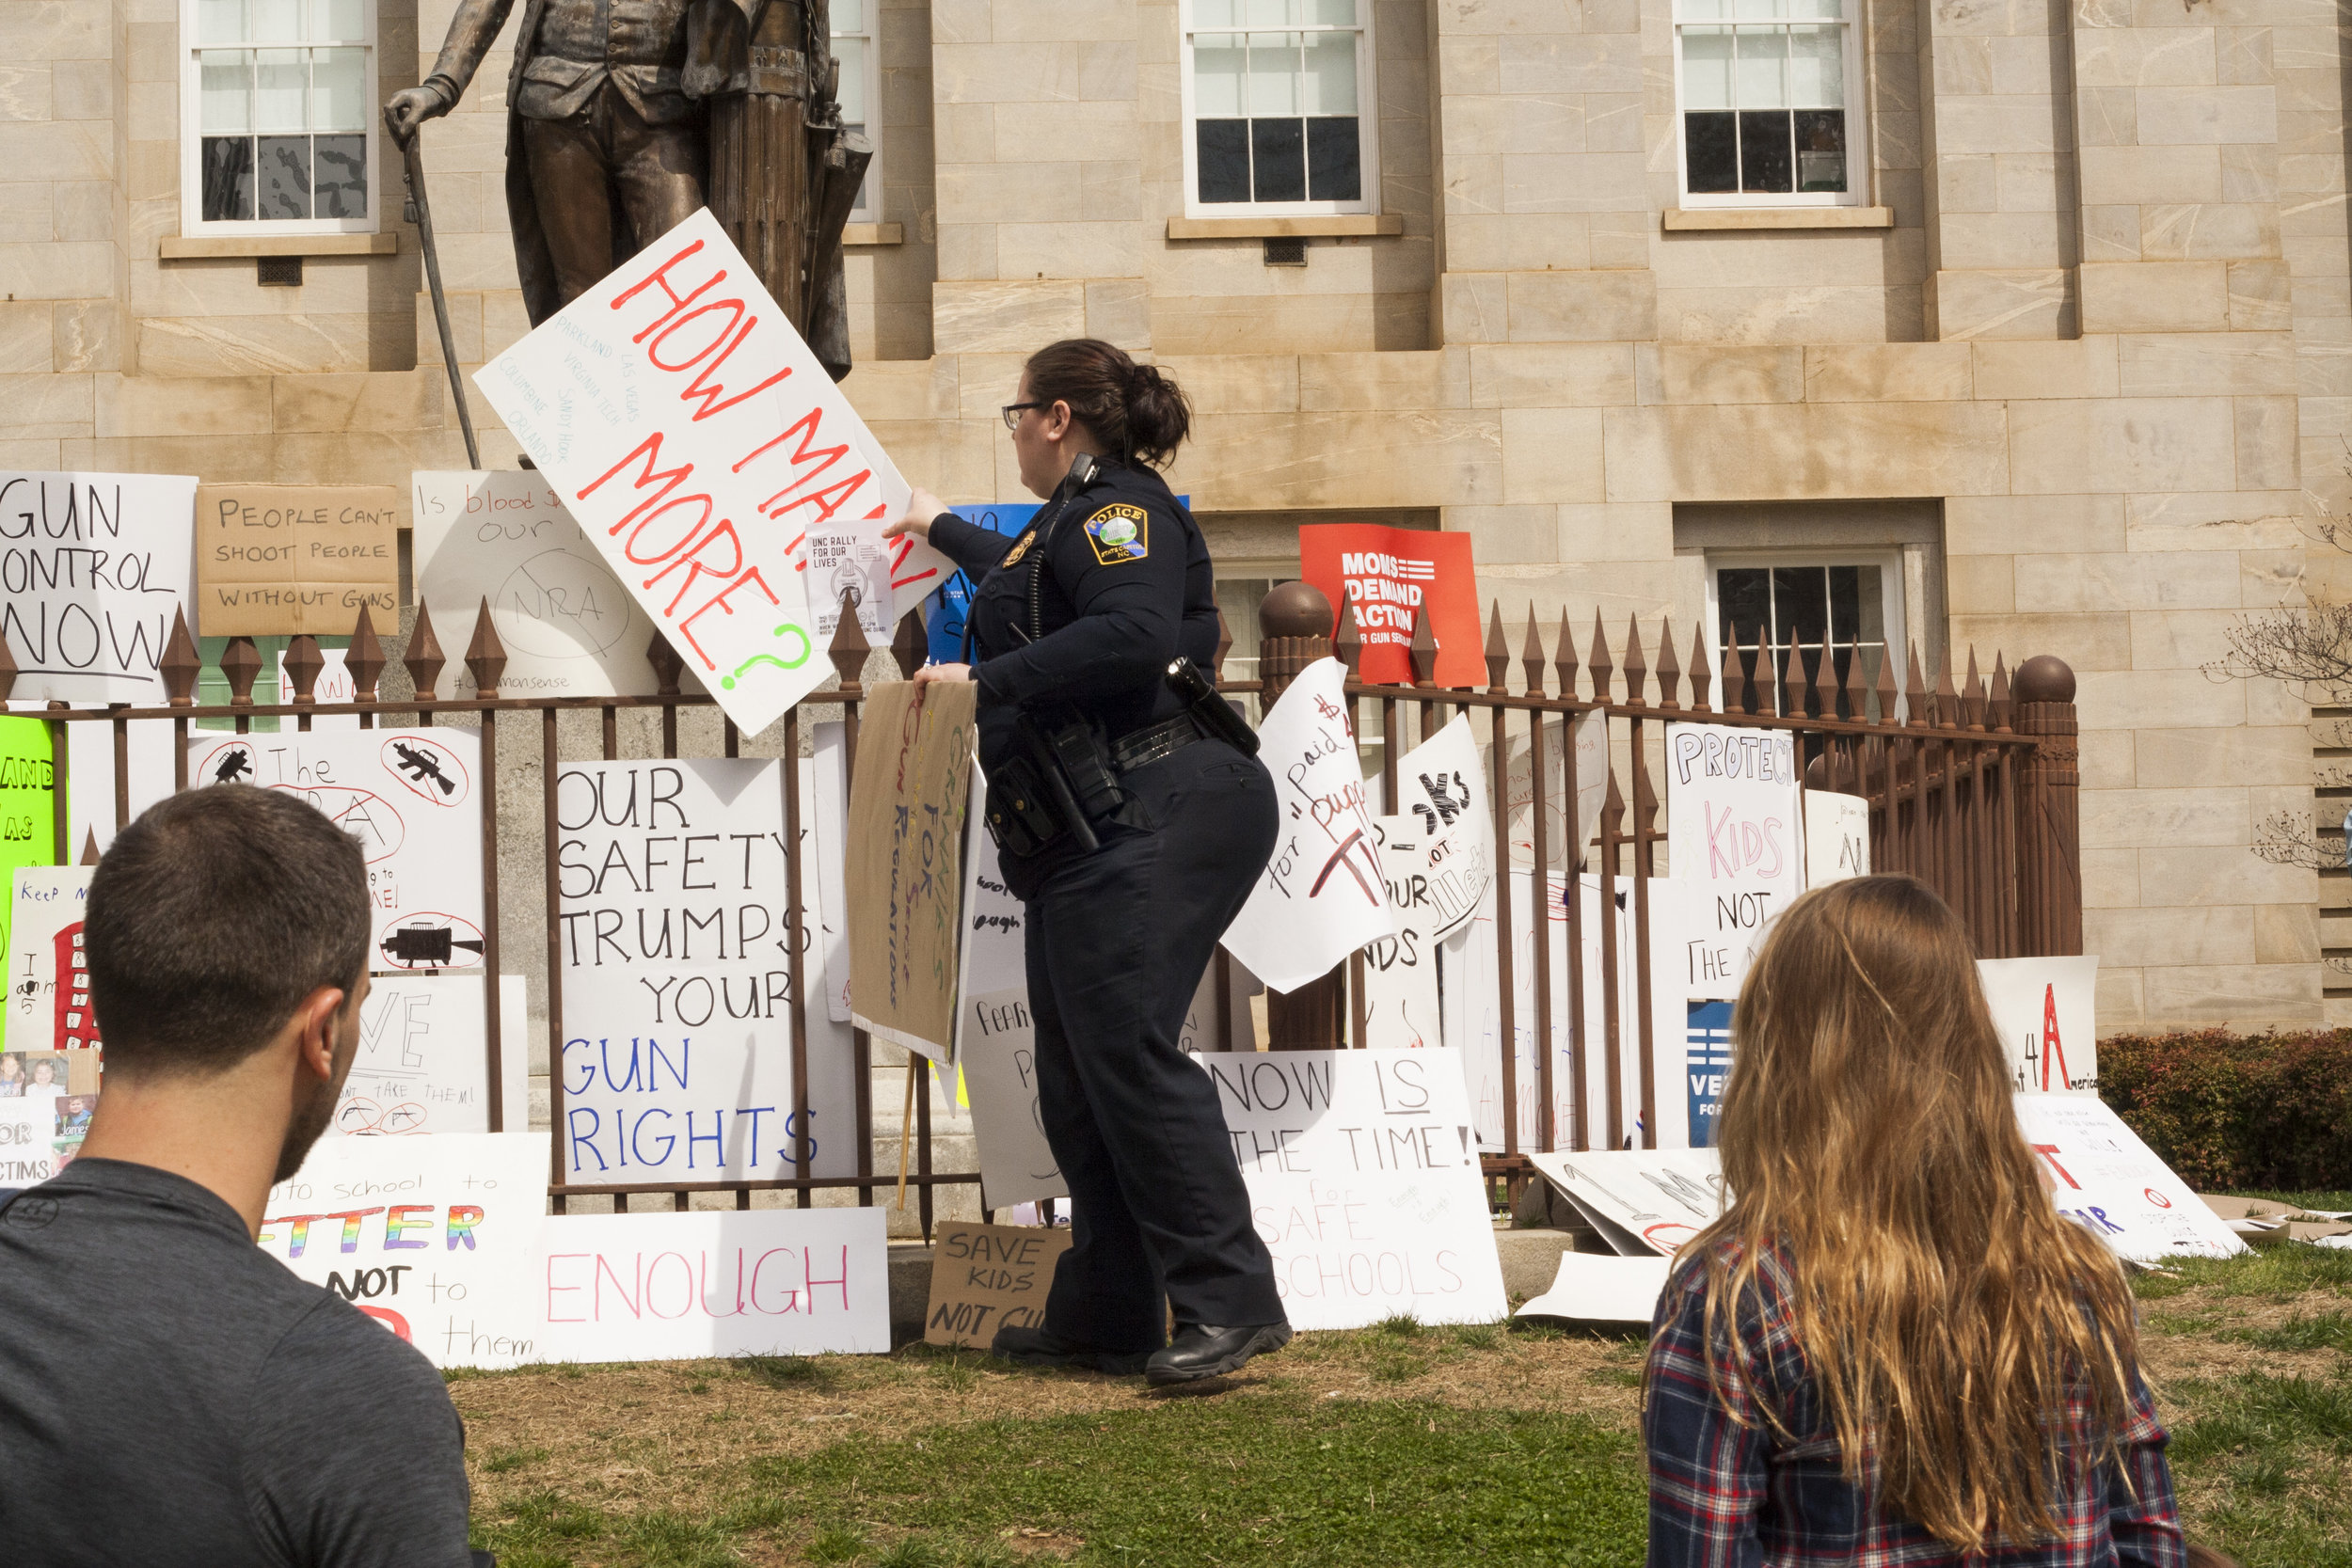 A police officer takes down signs saying it is litter as protesters observe.